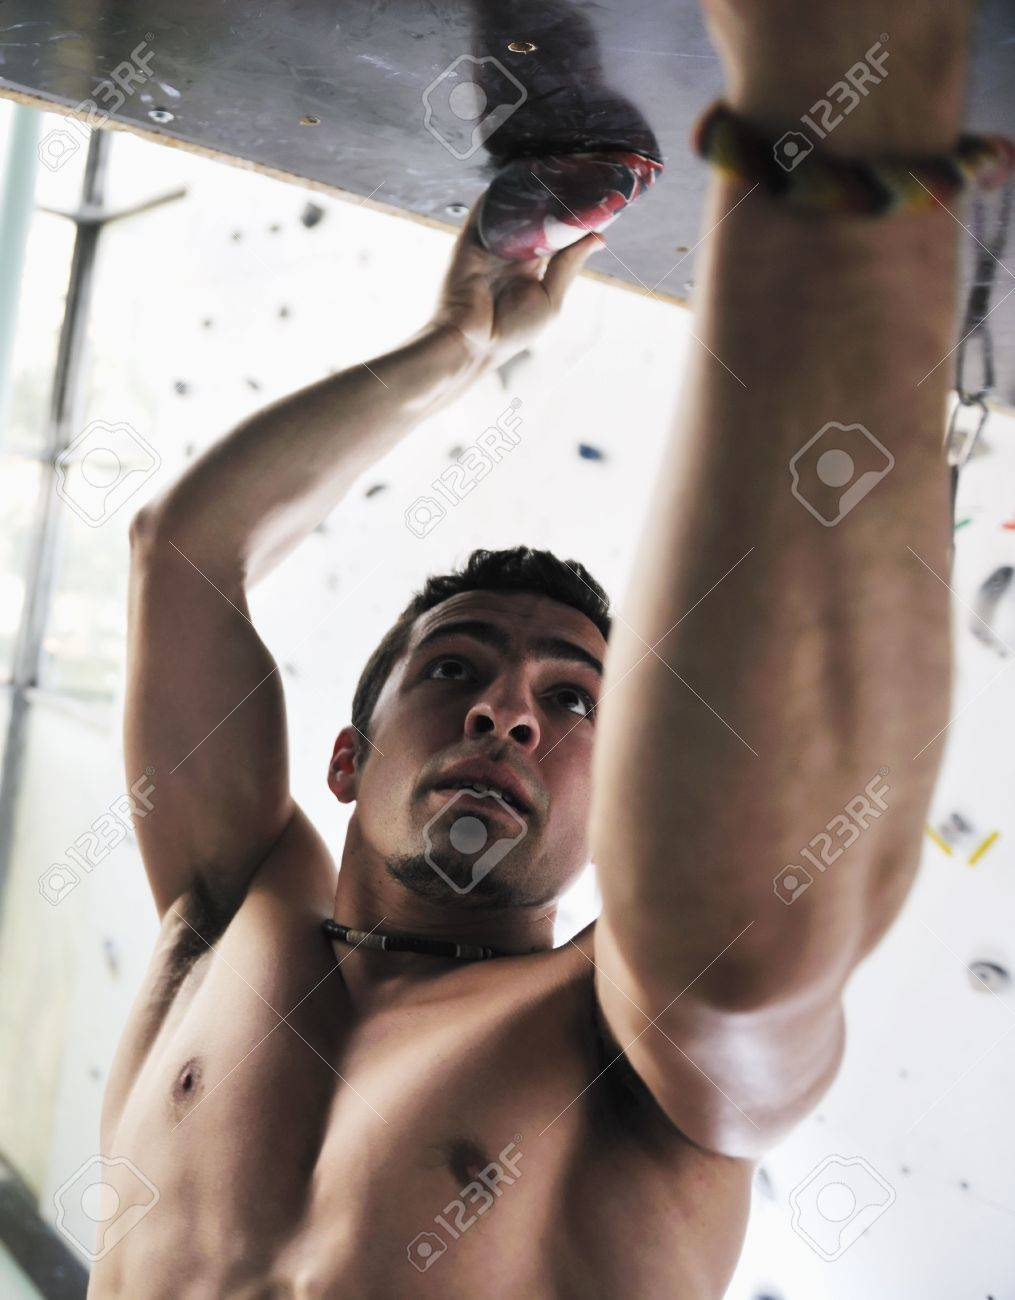 young and fit man exercise free mountain climbing on indoor practice wall Stock Photo - 6321877